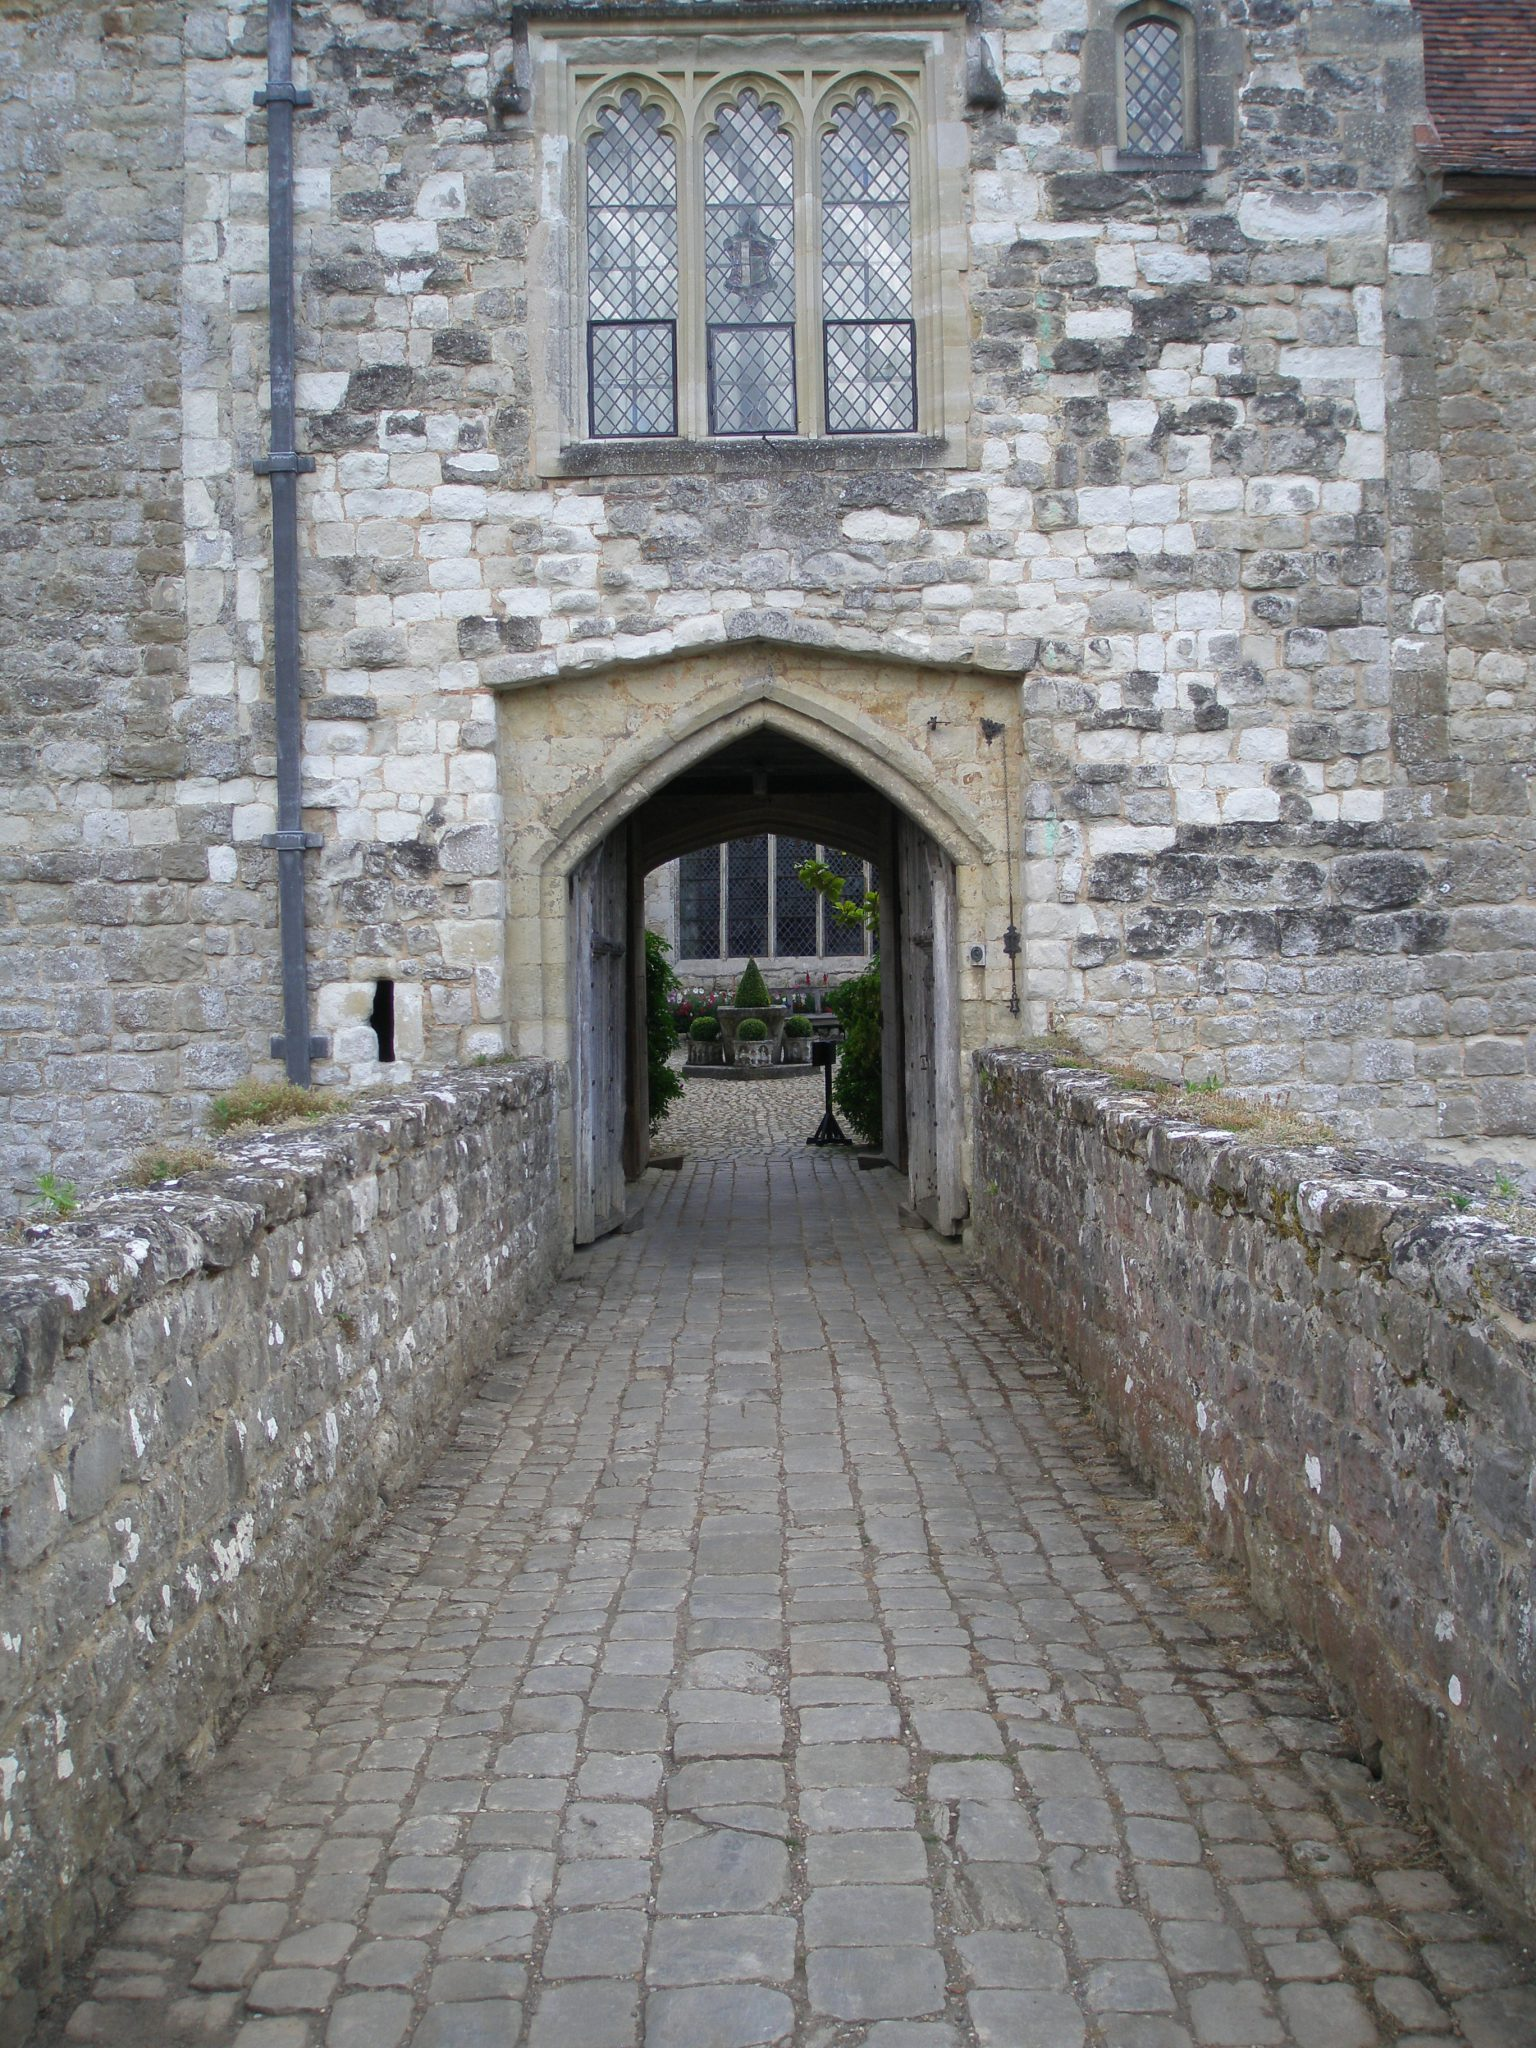 We cross the Gatehouse Tower Moat